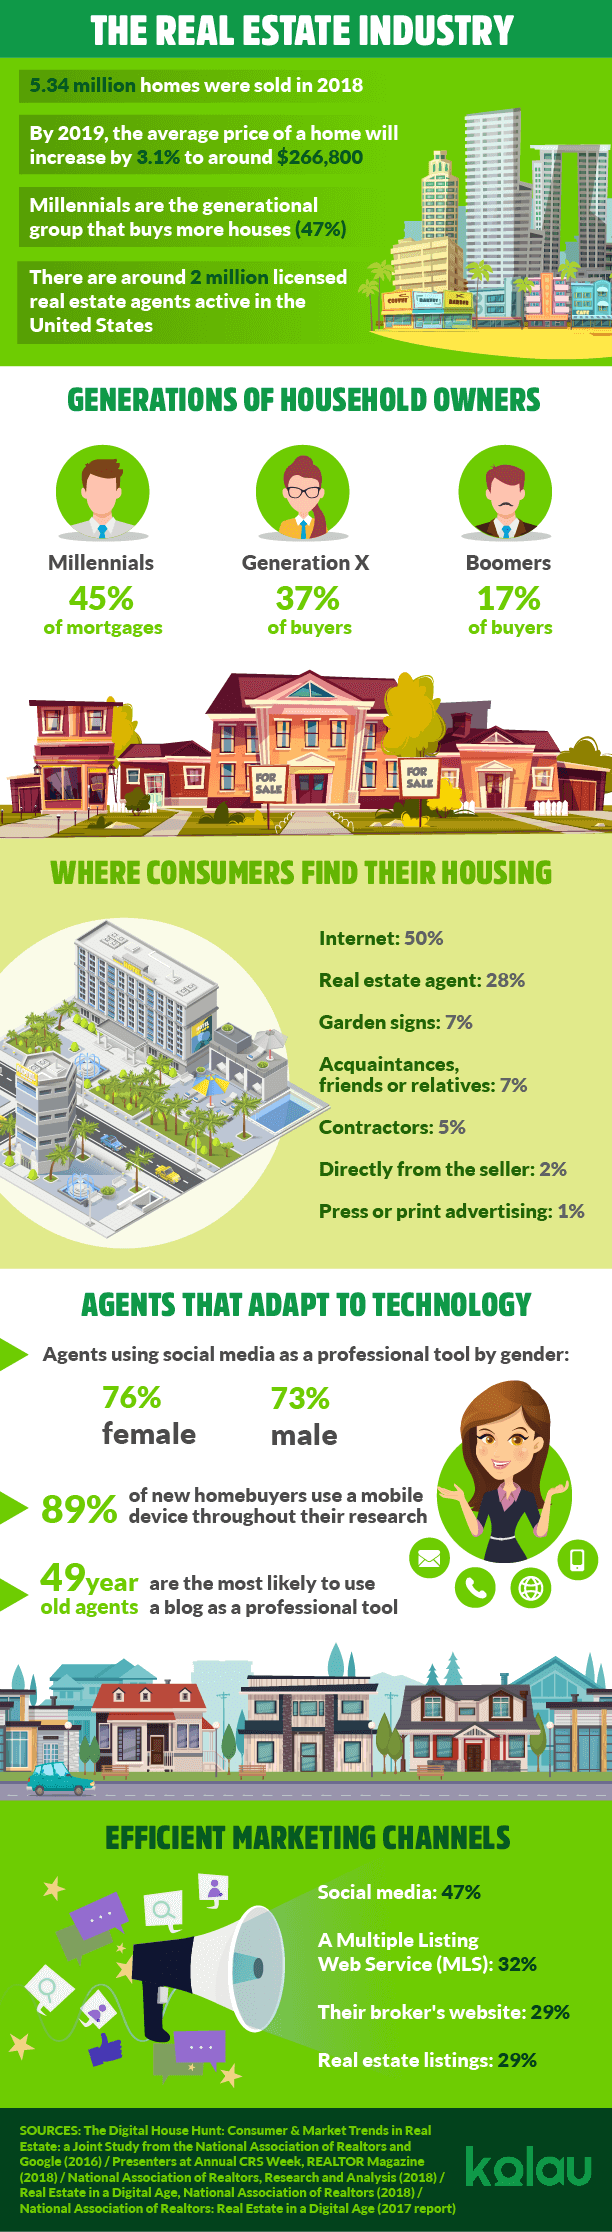 Infographic about how to get clients in real estate.